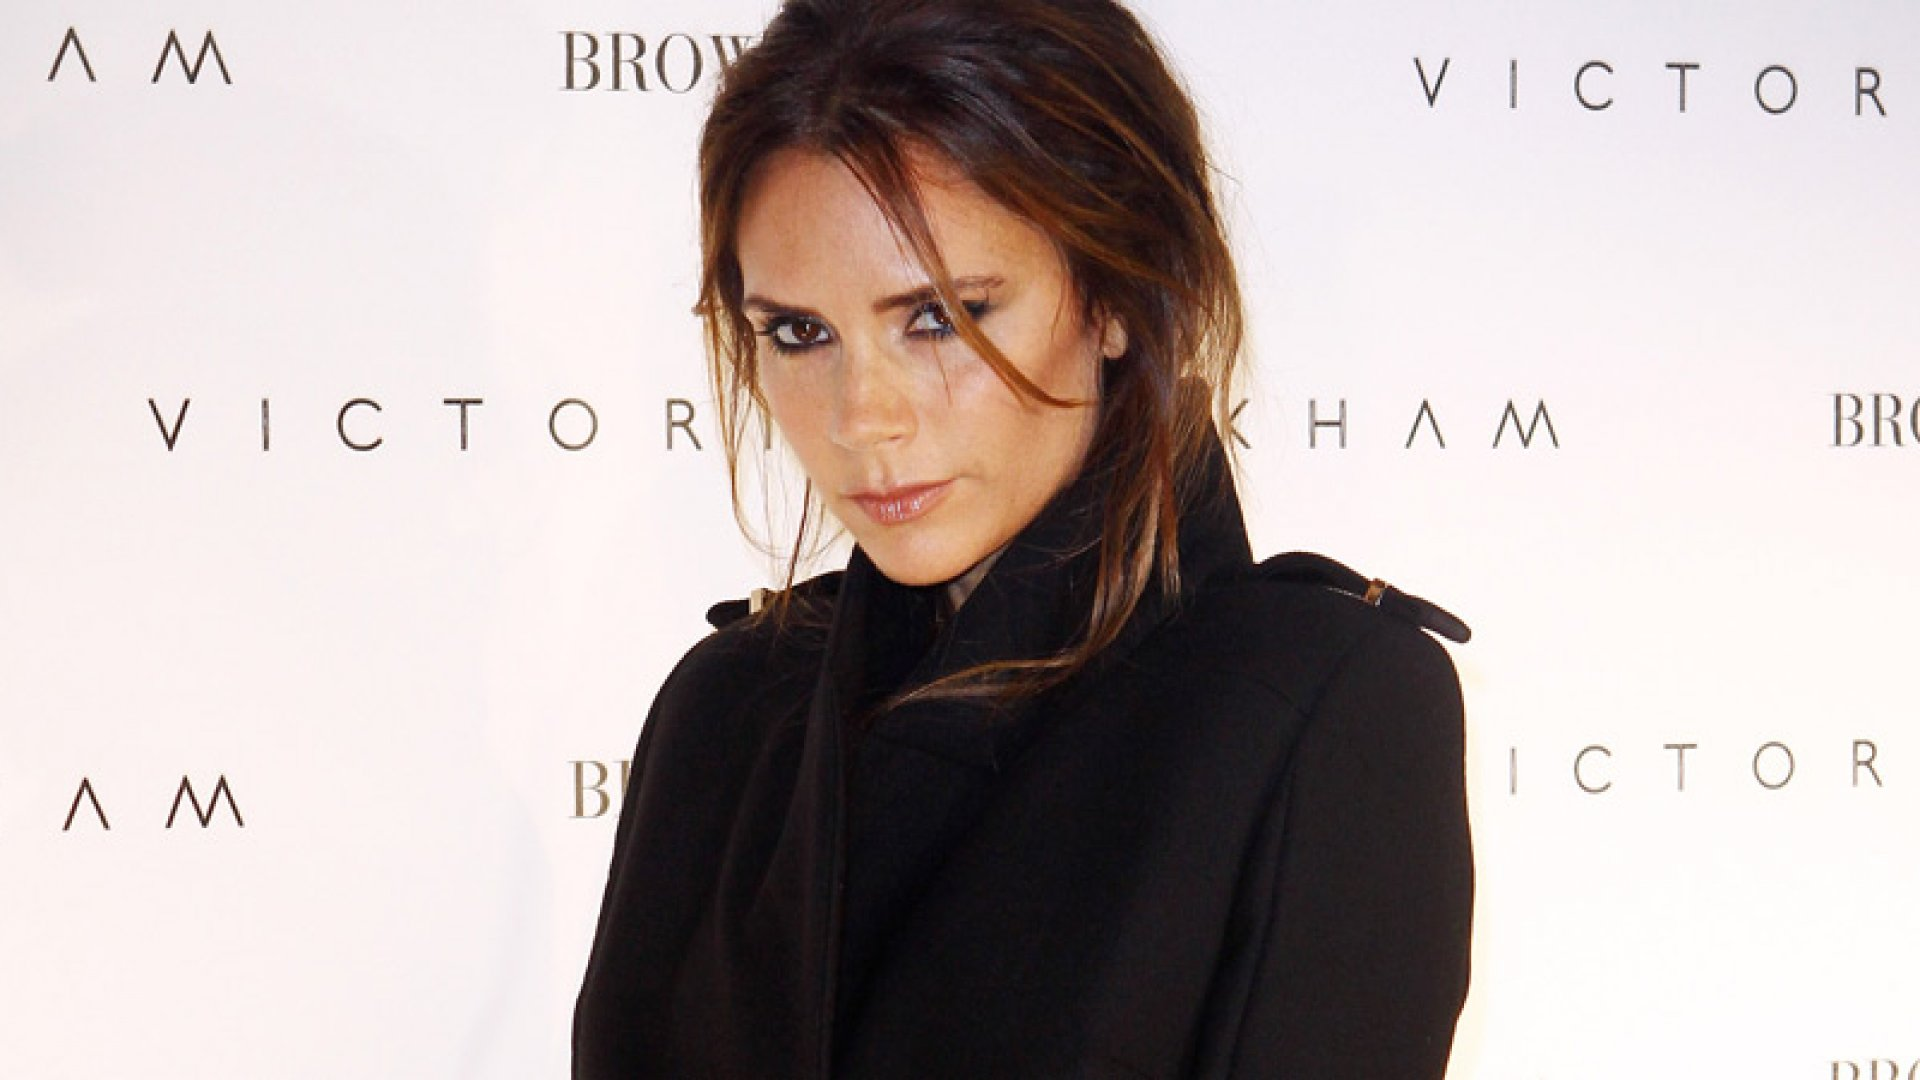 Why Victoria Beckham Is Not a Successful Entrepreneur